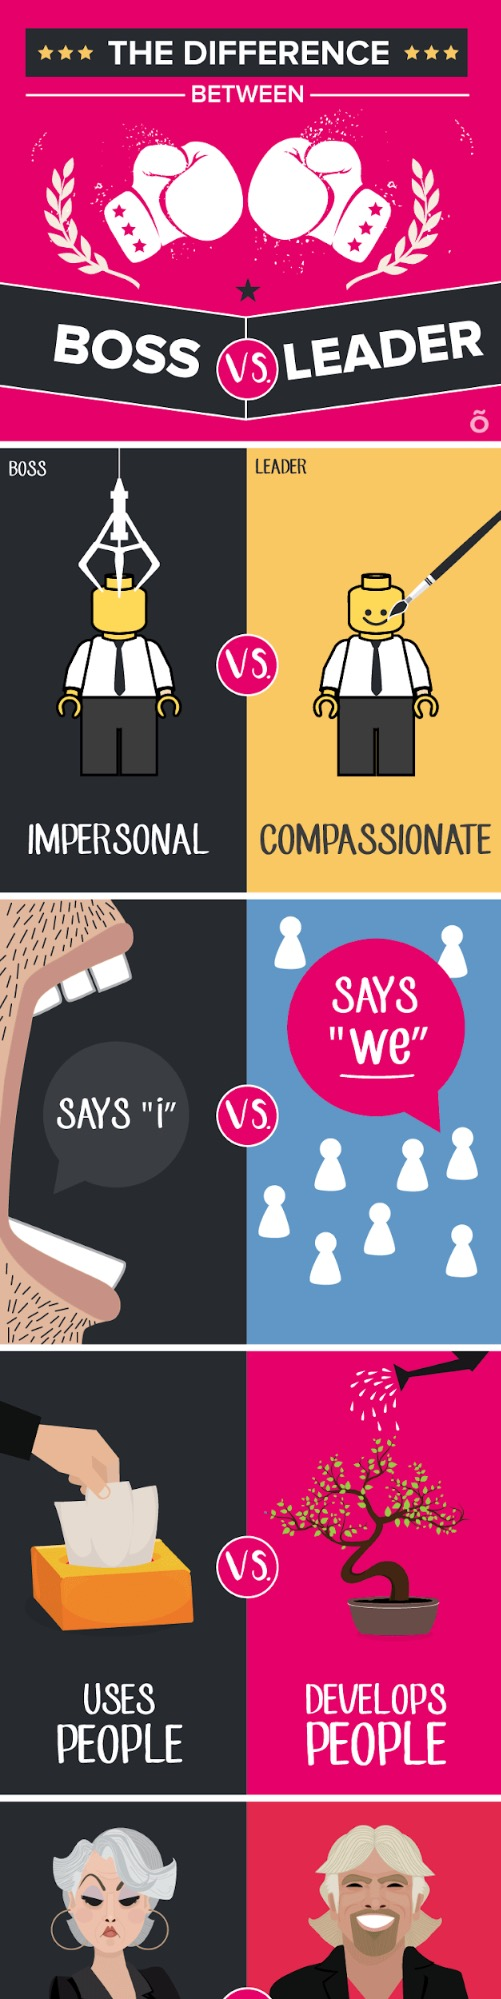 The Difference Between A Boss And A Leadership Infographic2